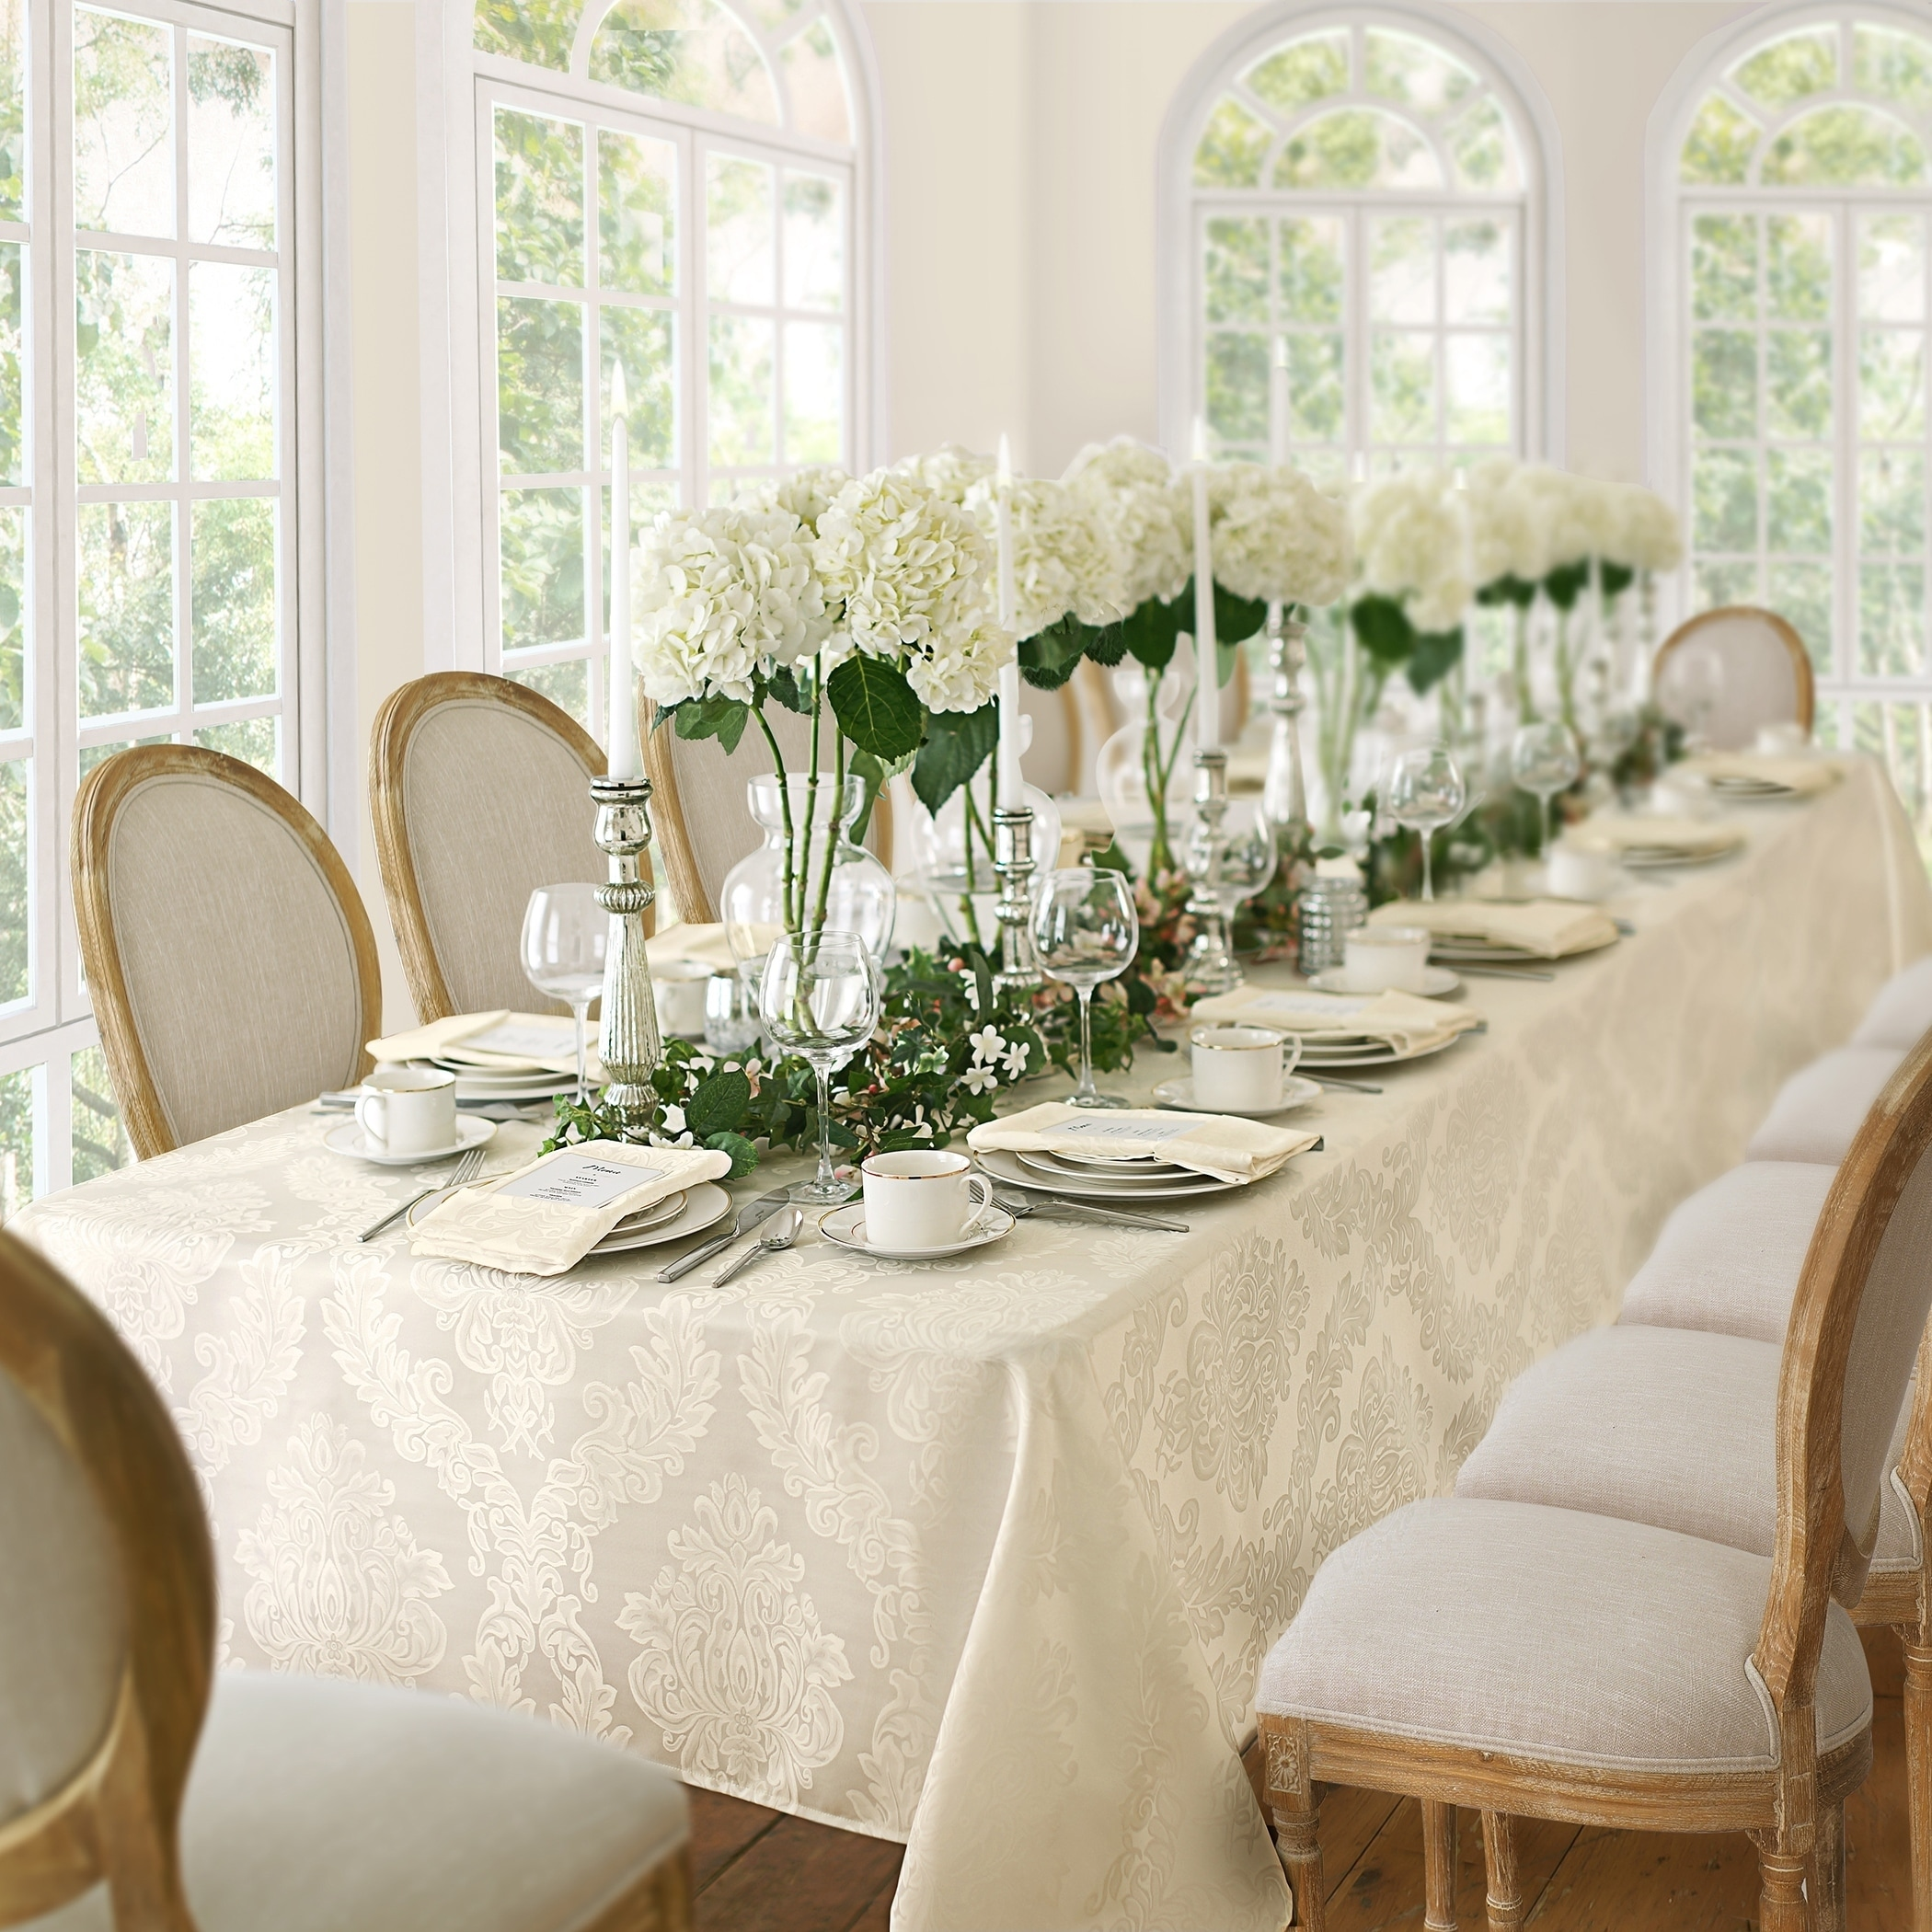 Overstock.com & Buy Tablecloths Tablecloths Online at Overstock | Our Best ...